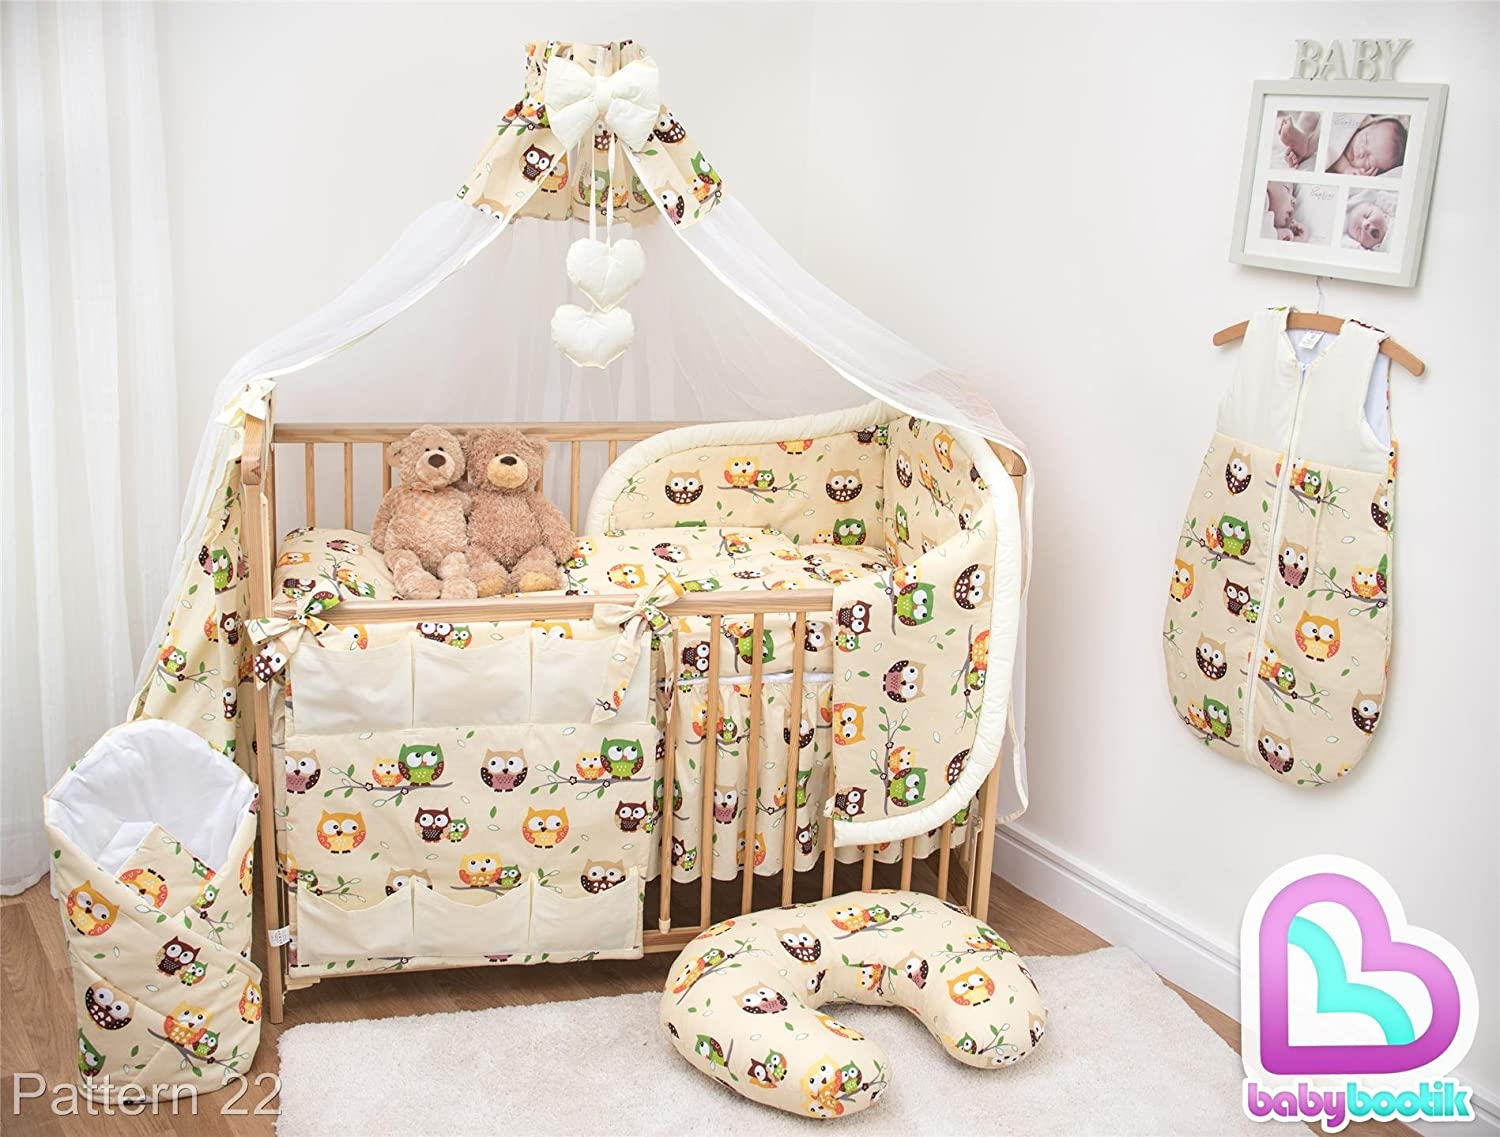 7 Pcs Baby Bedding Set with Cot Canopy, Padded Thick Bumper 190cm, 140x70cm - Pattern 22 Baby Comfort